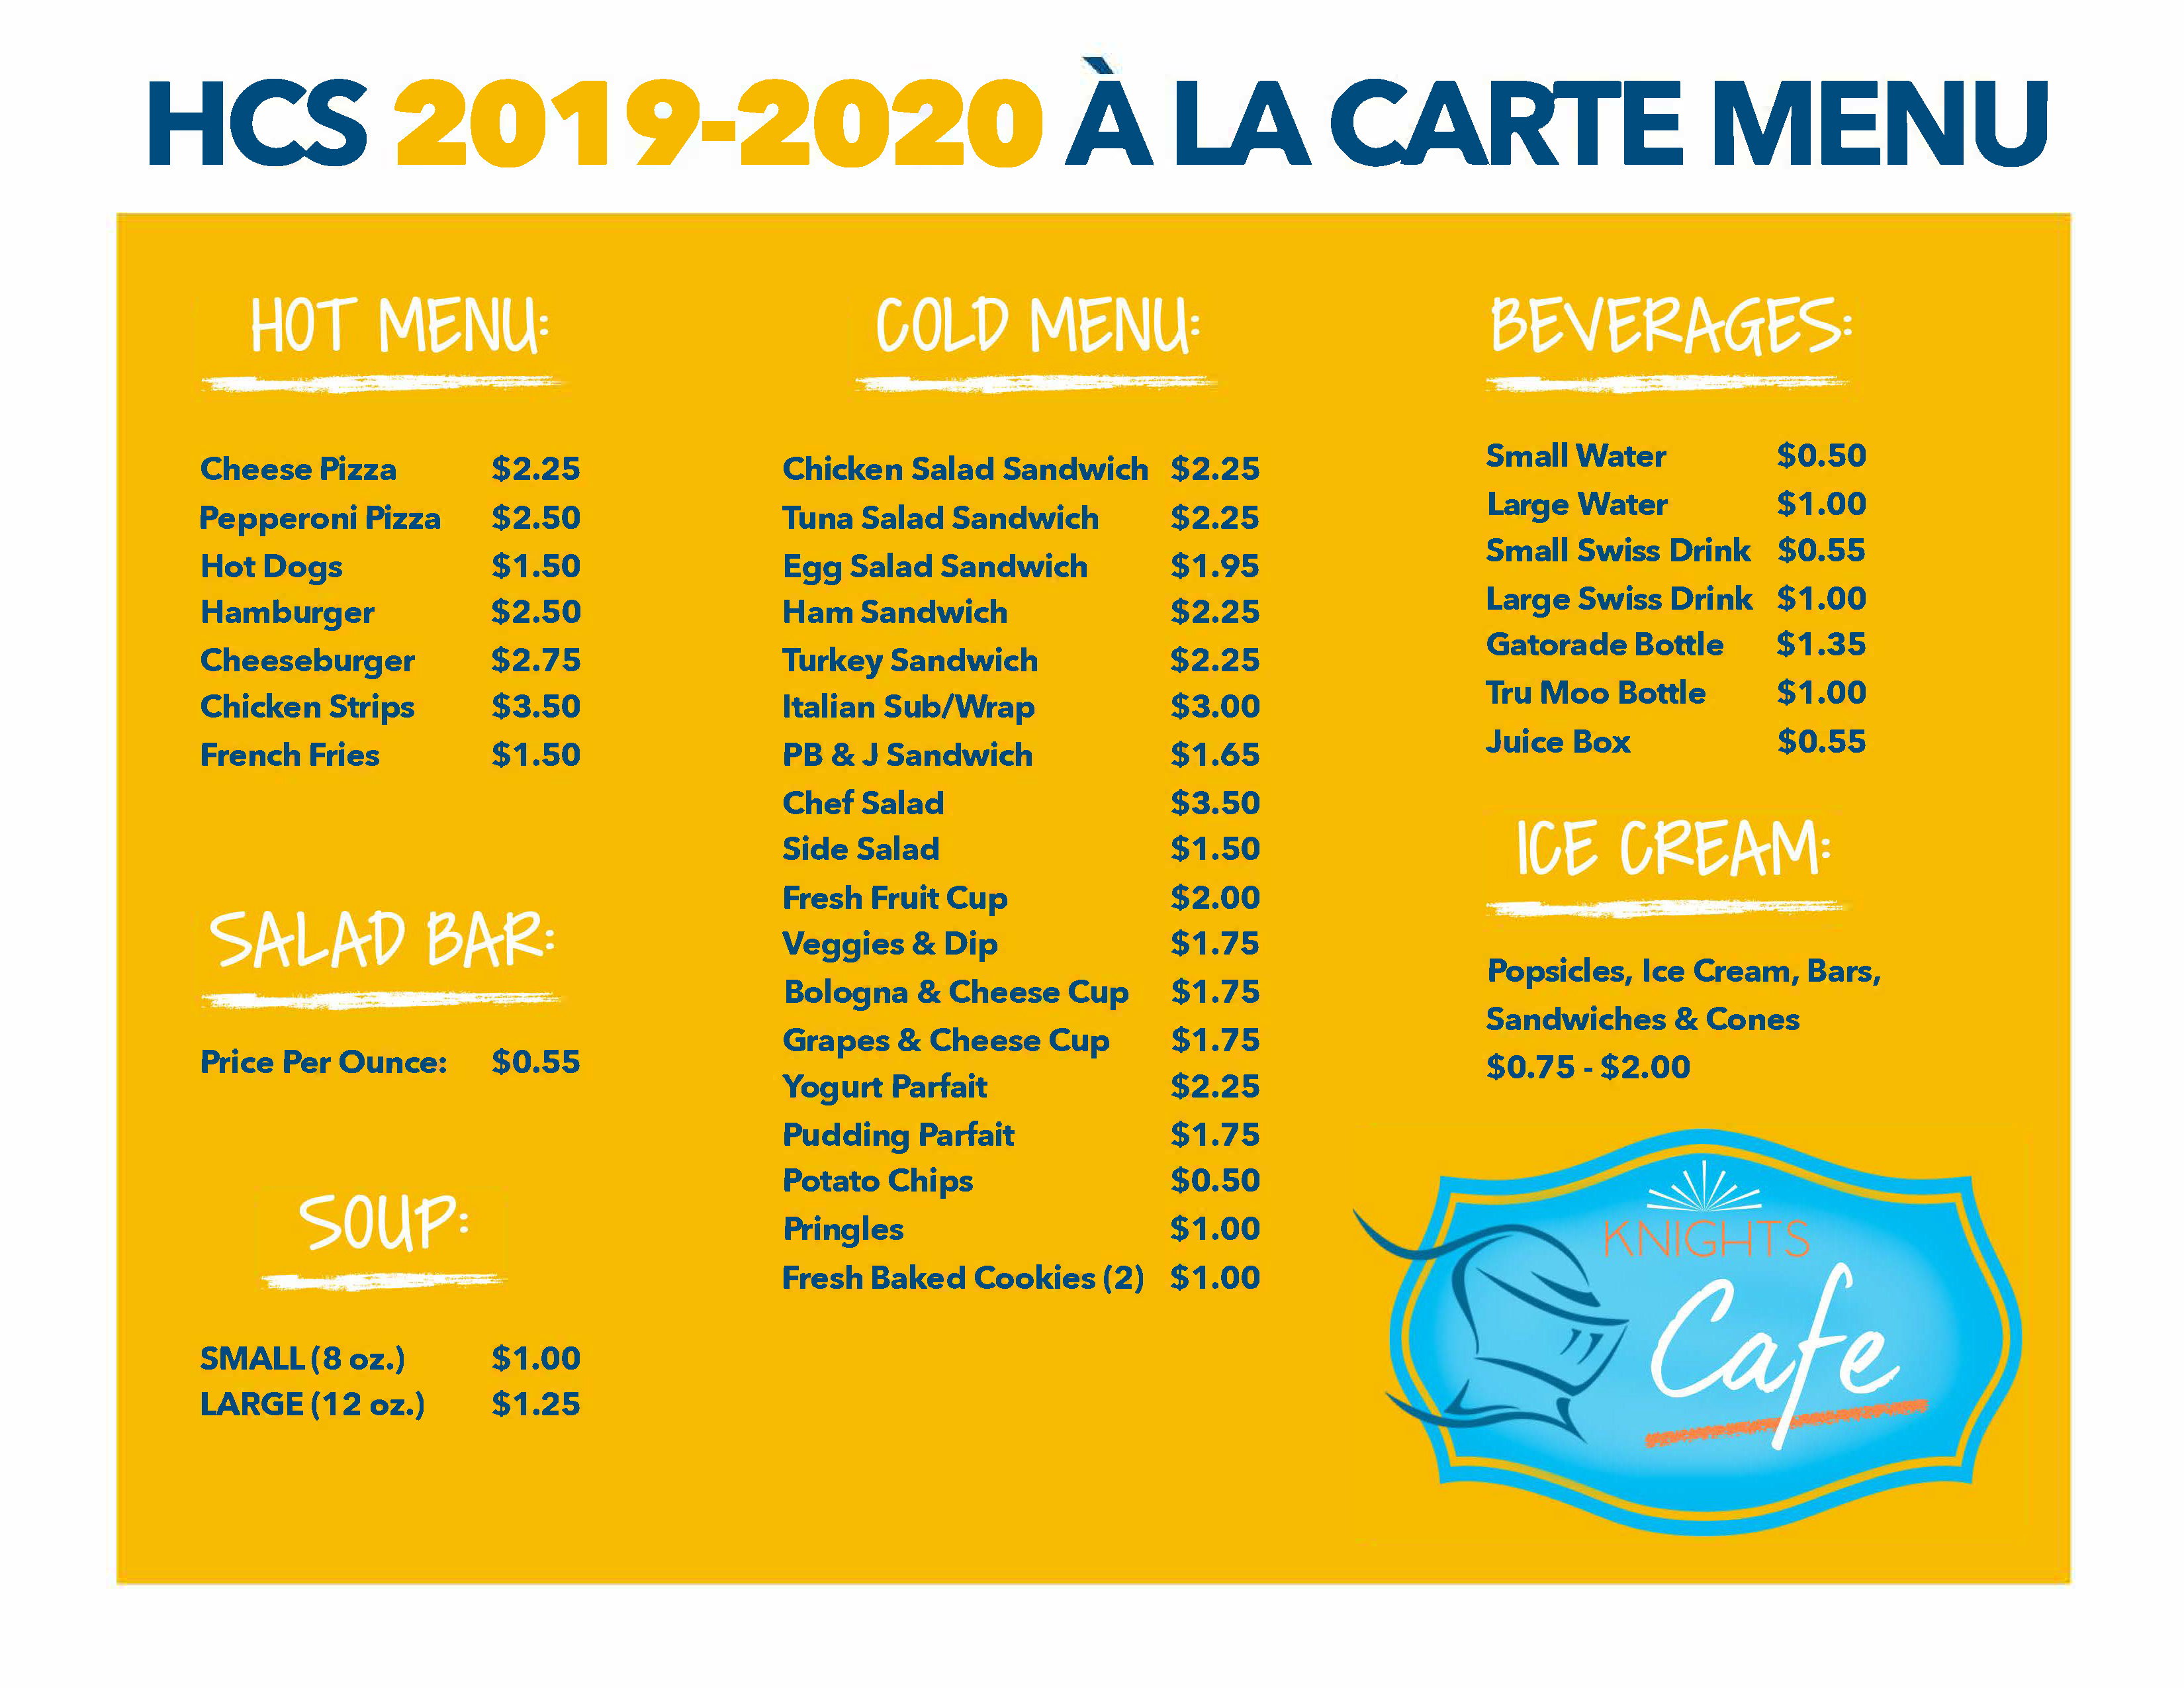 Knights' Cafe A La Carte Menu